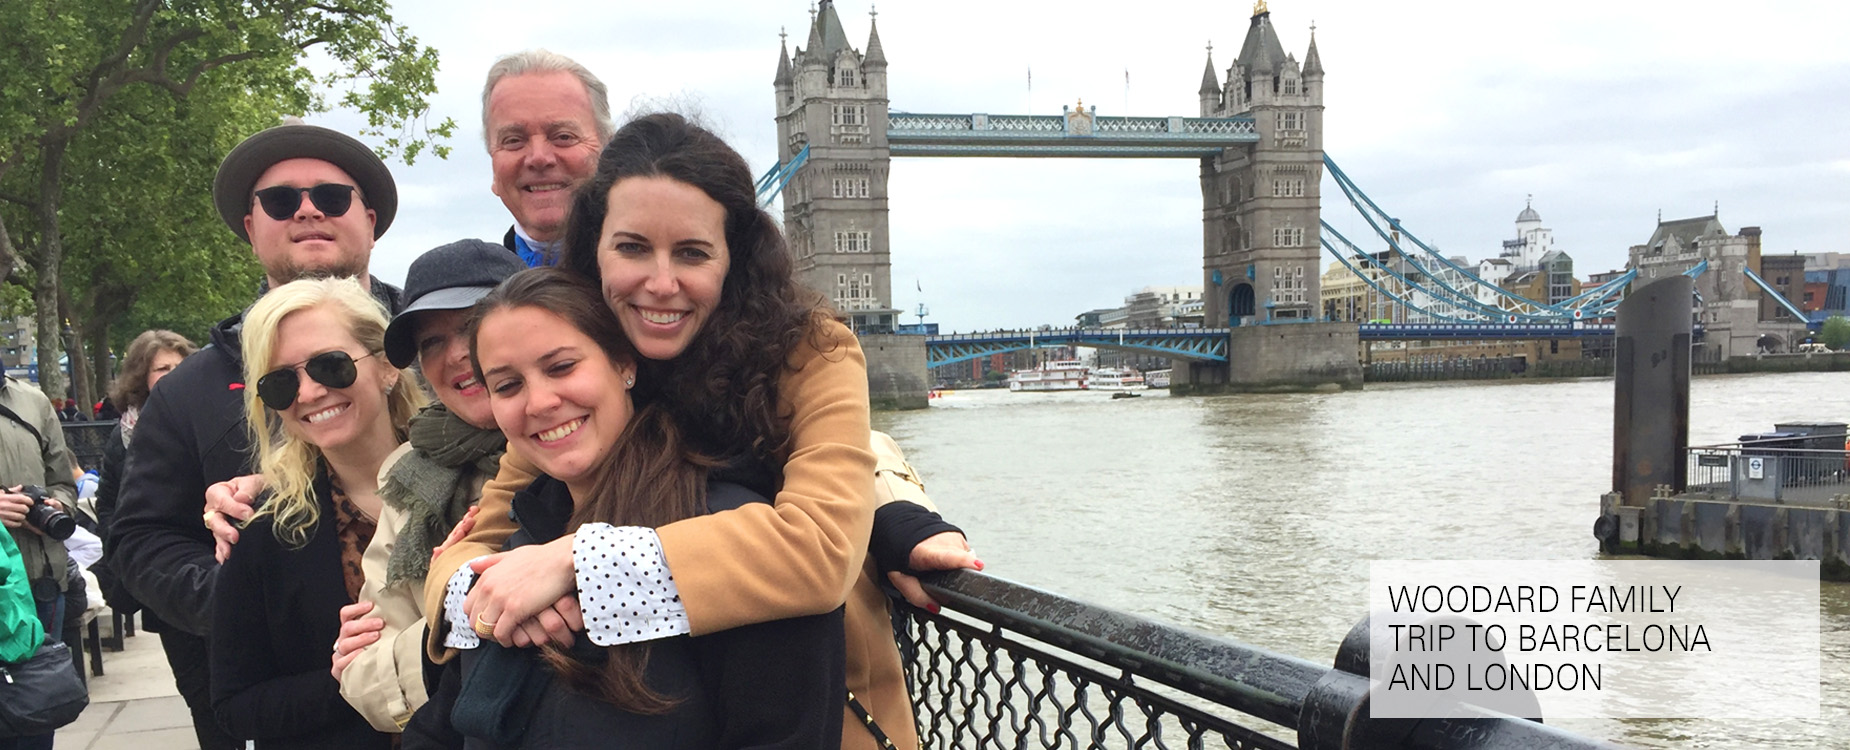 Woodard Family Trip to Barcelona and London